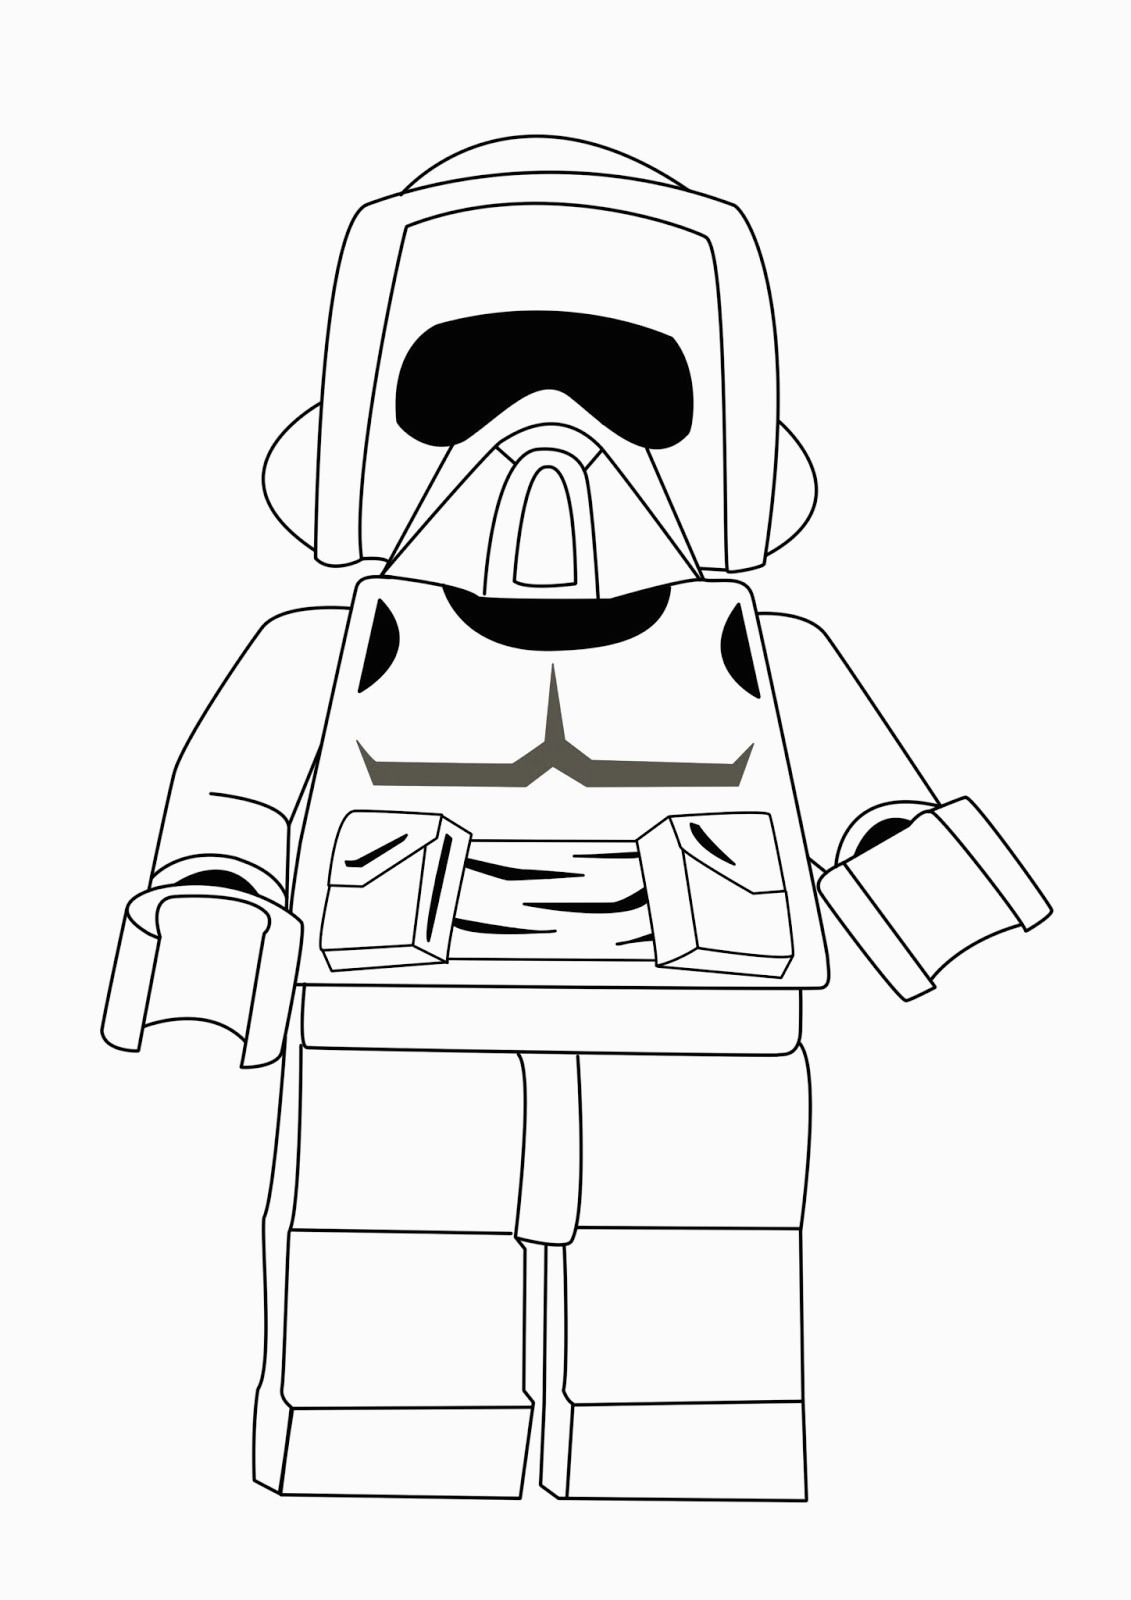 Free Star Wars Coloring Pages Lego Star Wars Coloring Pages Best Coloring Pages For Kids For Lego